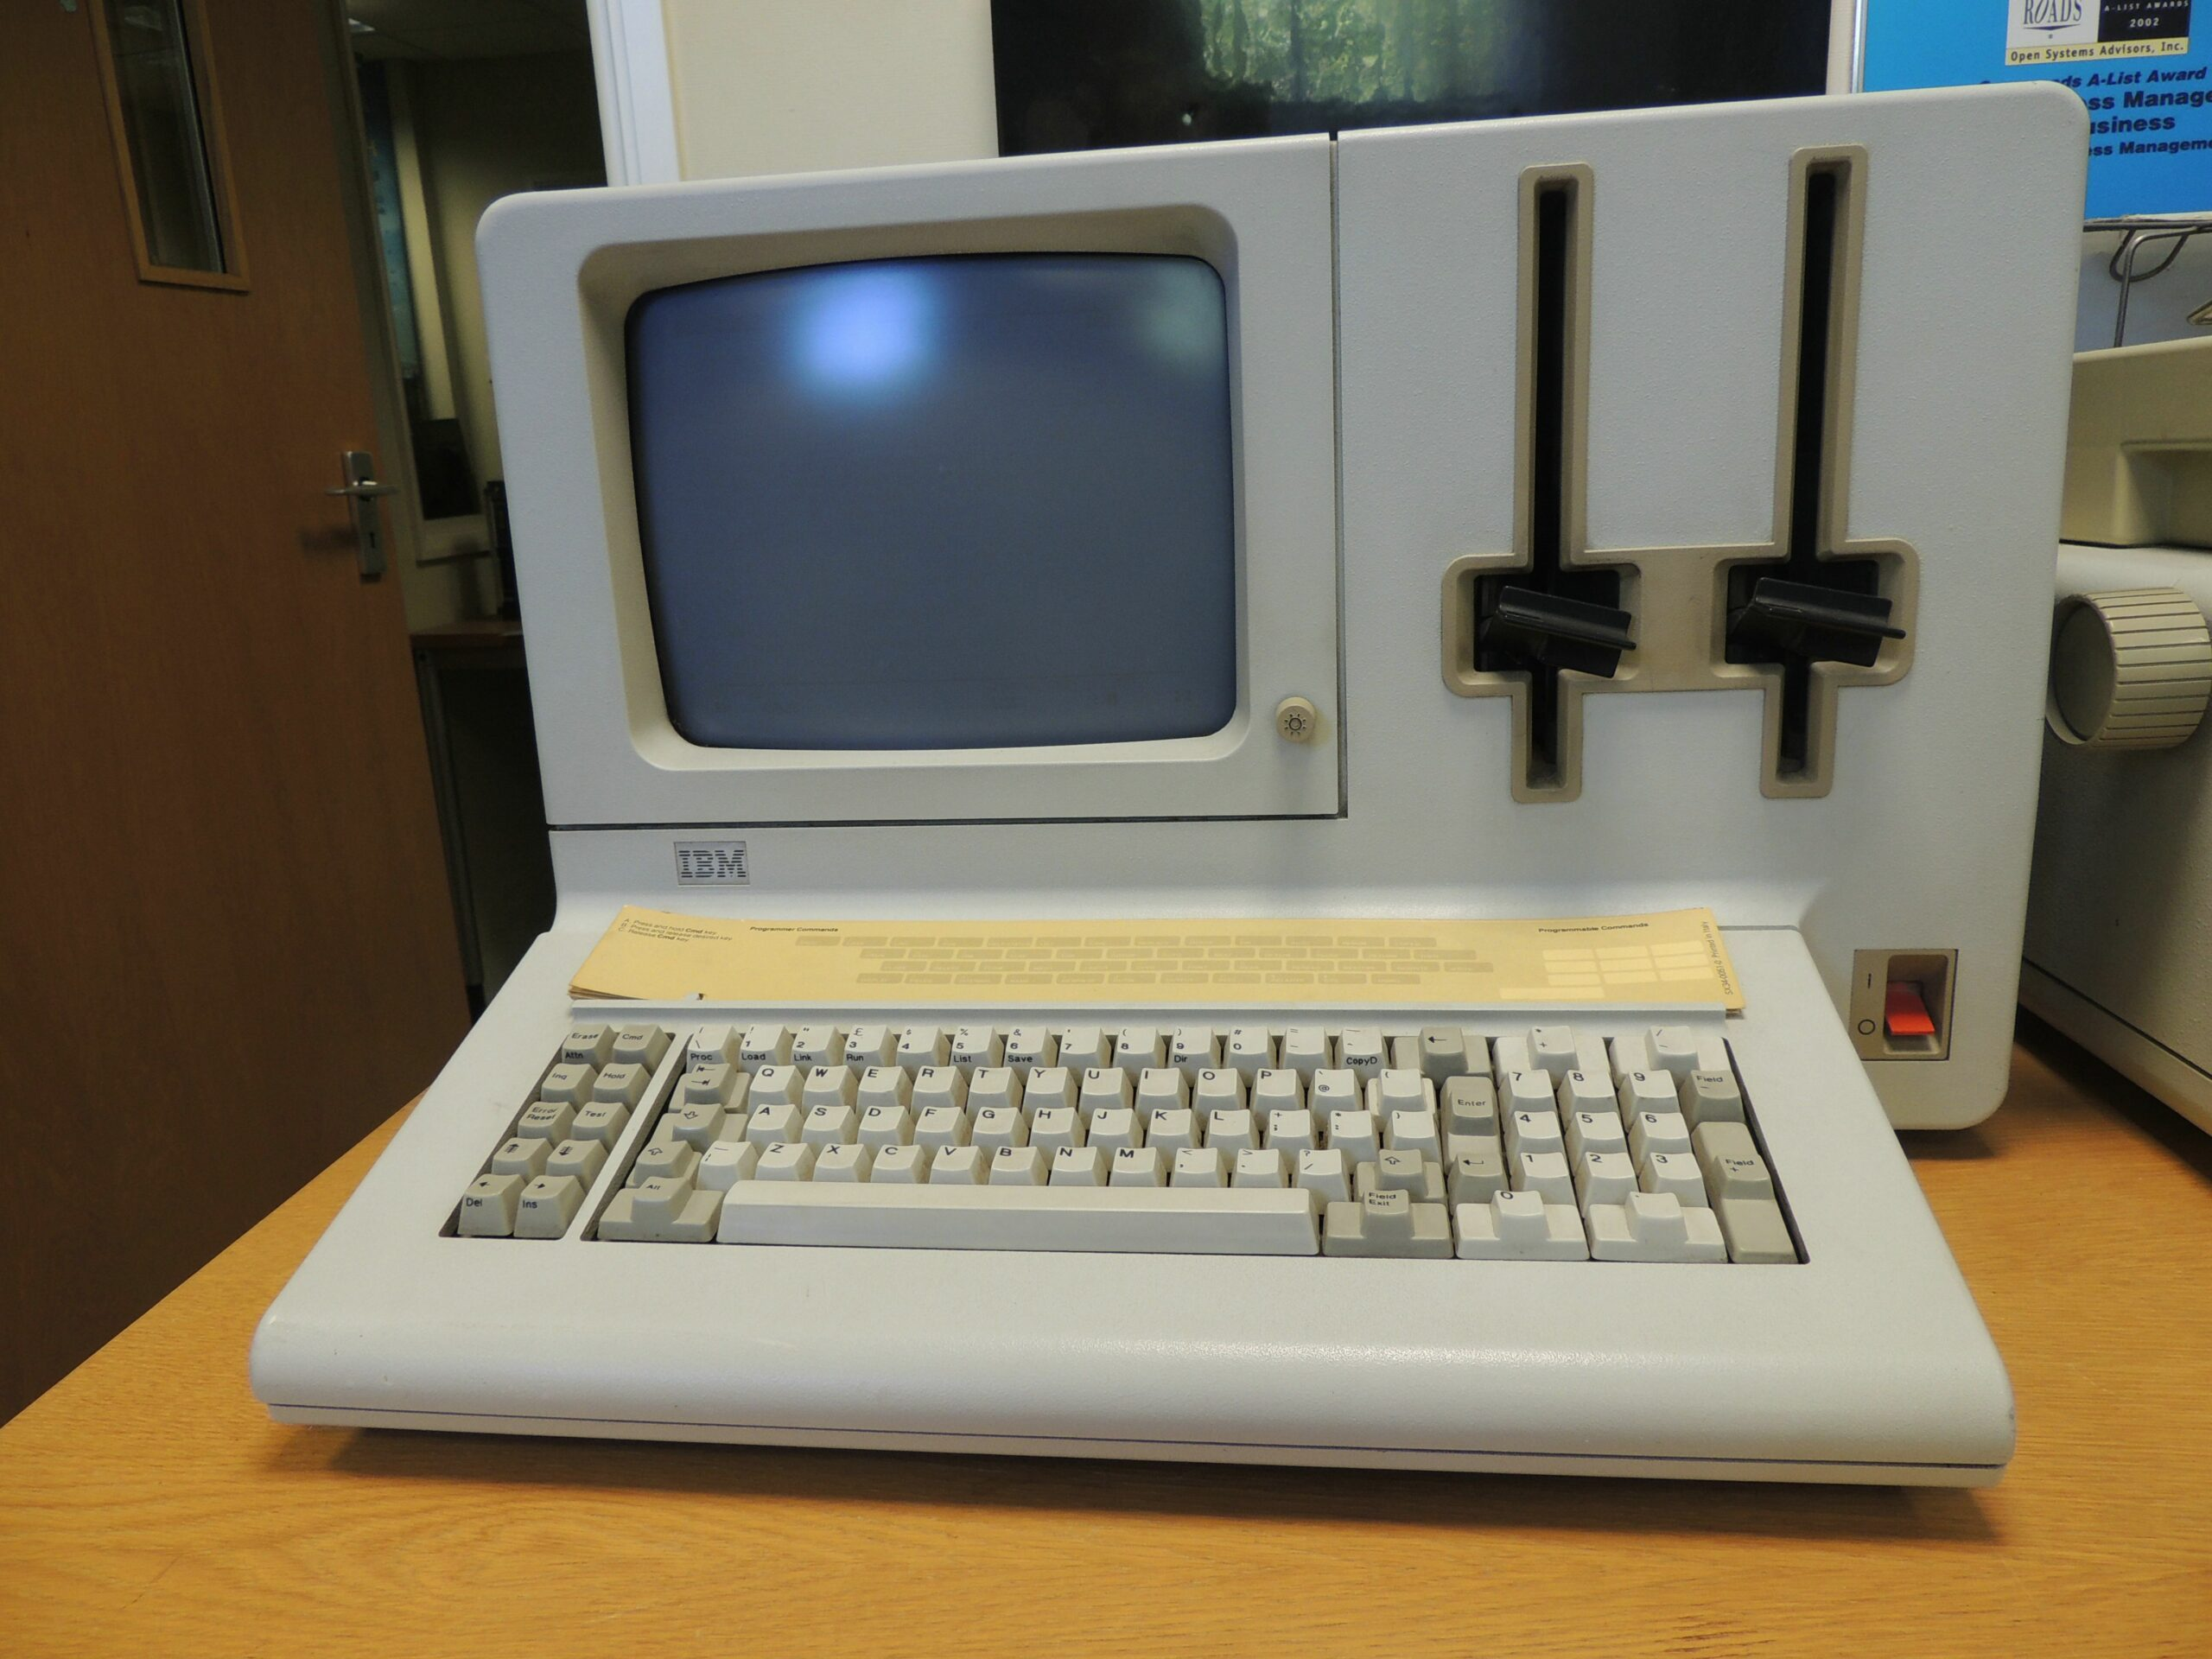 IBM's System 23 Datamaster, pictured here at the IBM Hursley Museum, cost $9,000 US